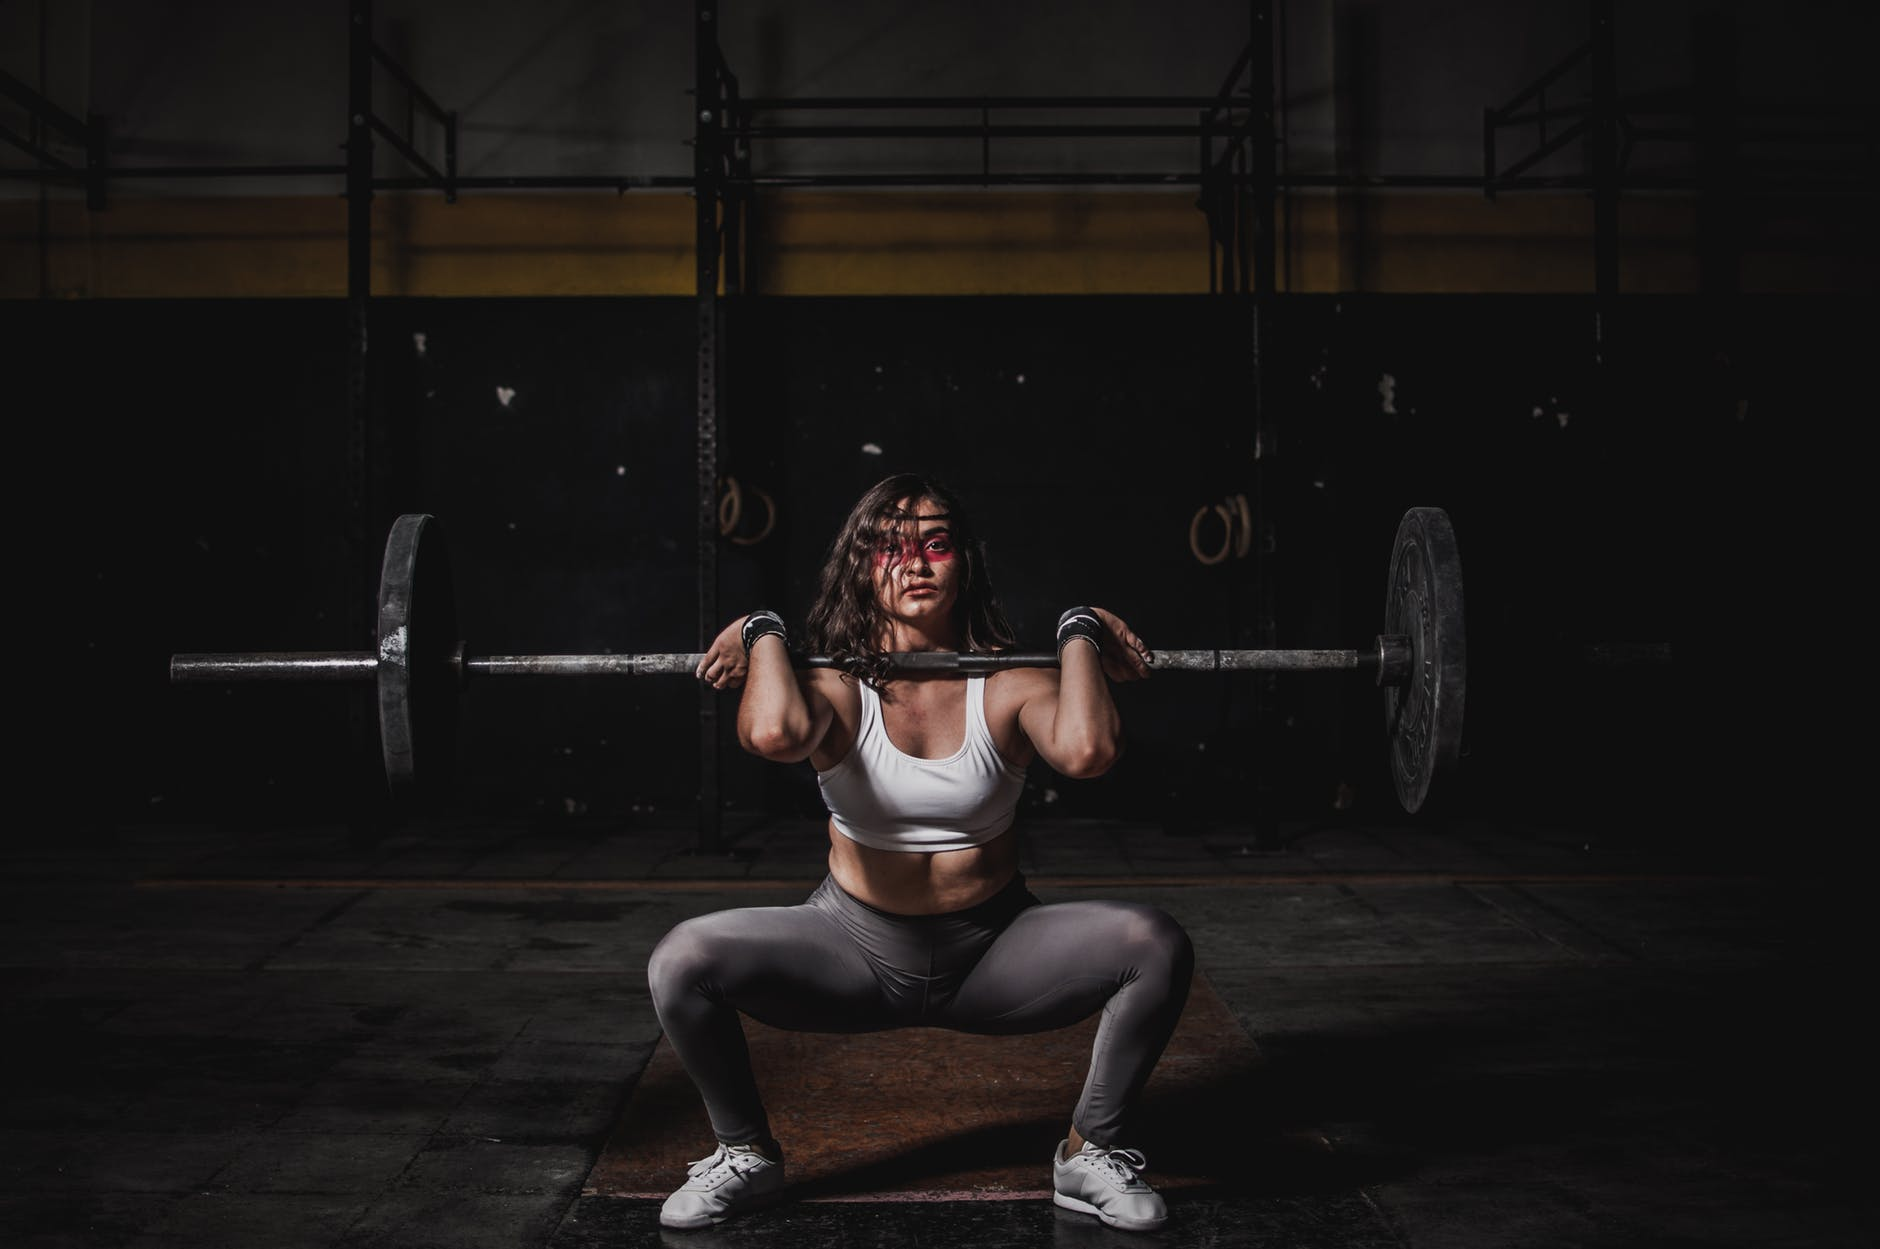 woman front squatting